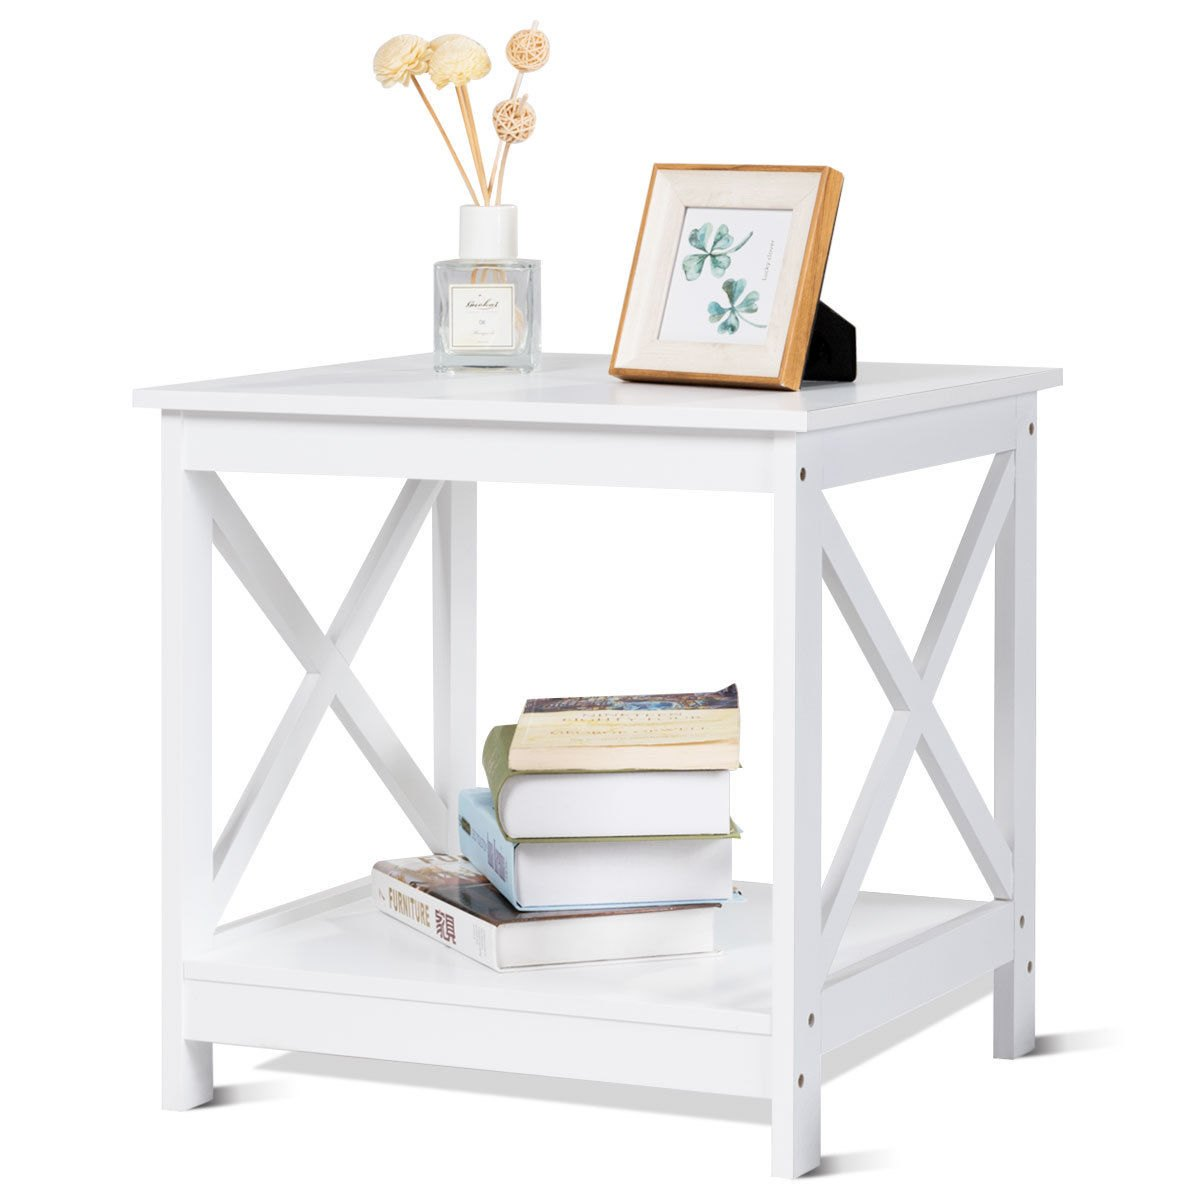 way end table design display shelves accent sofa side with drawer nightstand white half moon occasional wall decor teal entryway narrow tray marble nesting tables outdoor wicker